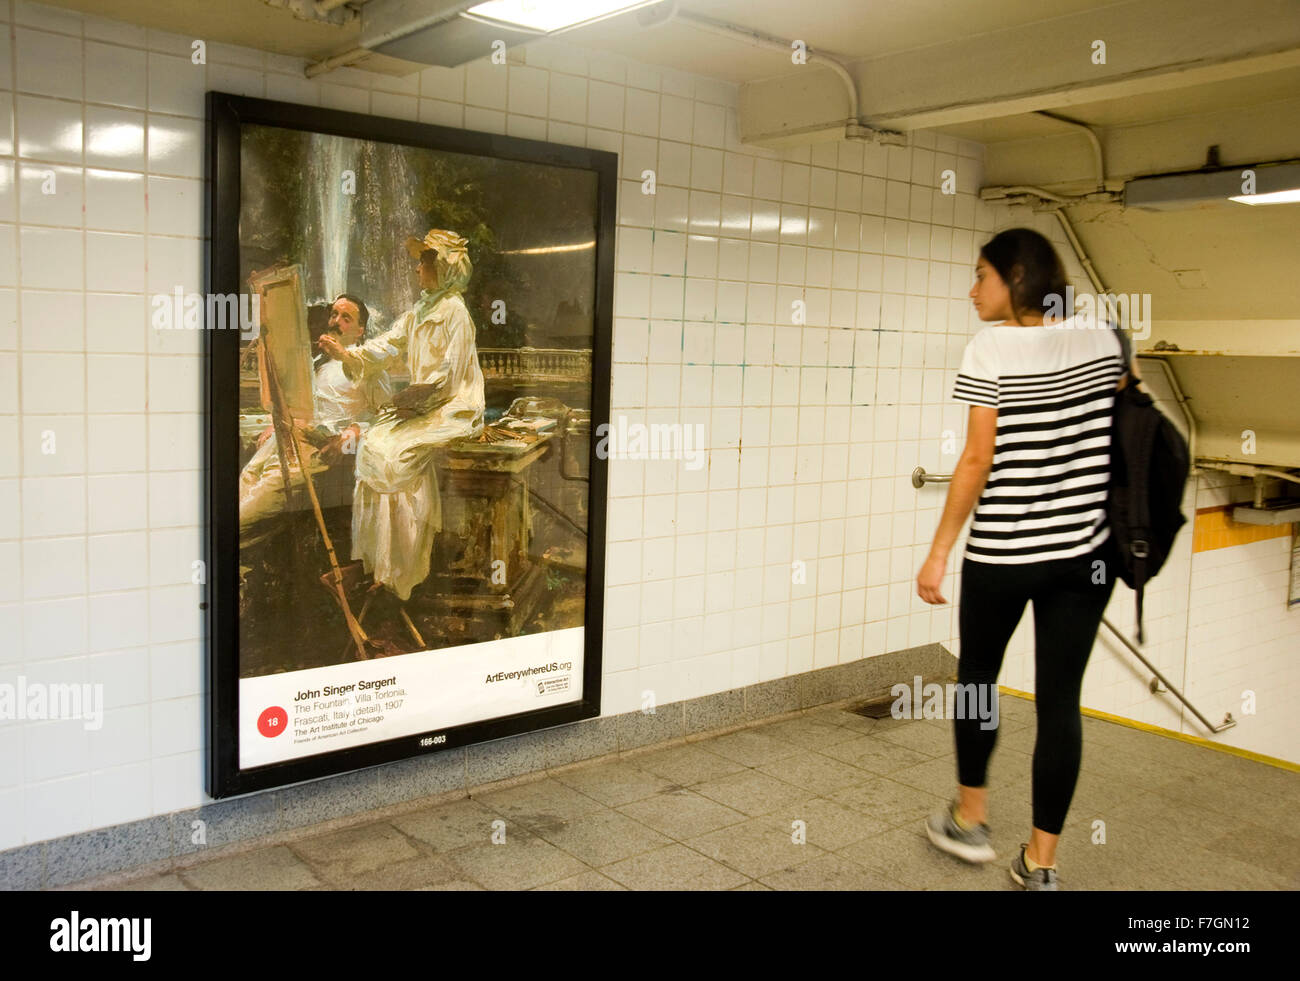 John Singer Sargent painting reproduced on advertising panel in New York city subway as part of the Art Everywhere Stock Photo